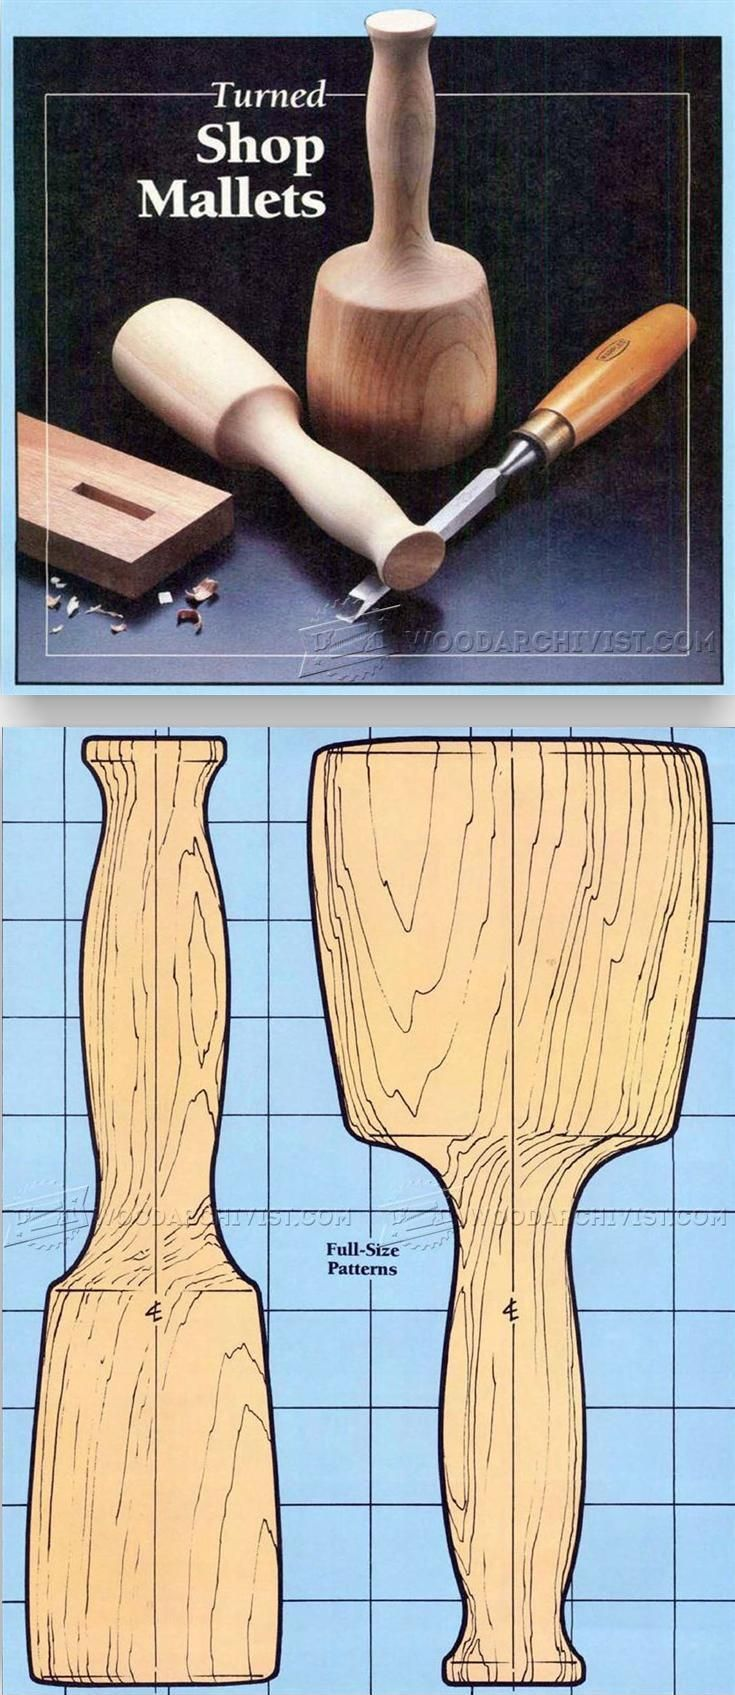 Wooden Mallet Plans - Hand Tools Tips and Techniques